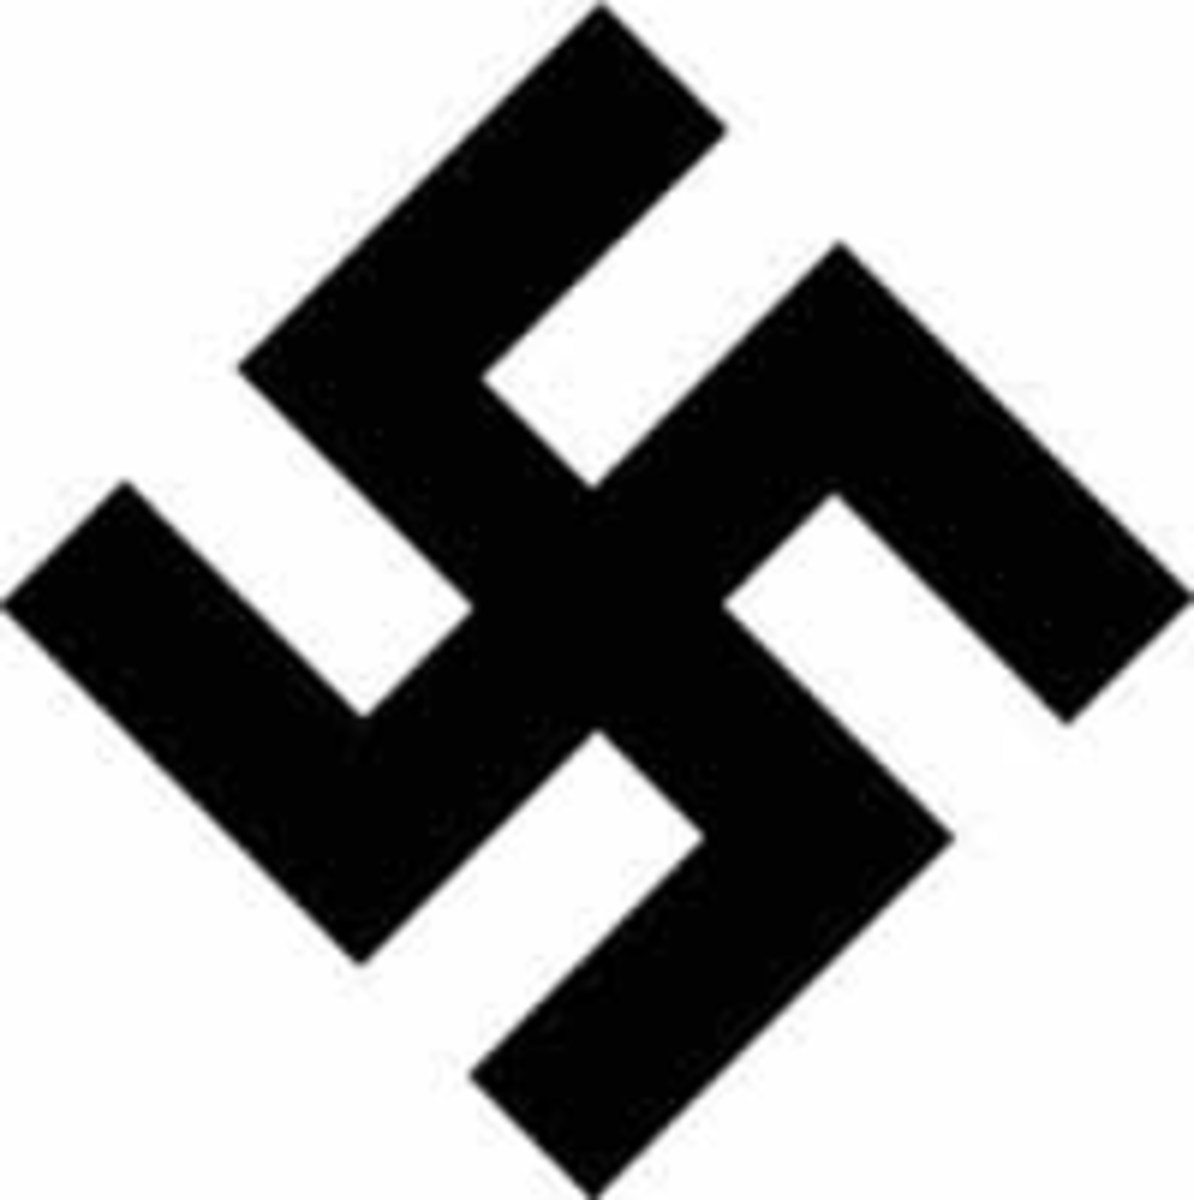 the-irony-of-nazi-symbolism-appropriating-from-the-cultures-they-hate